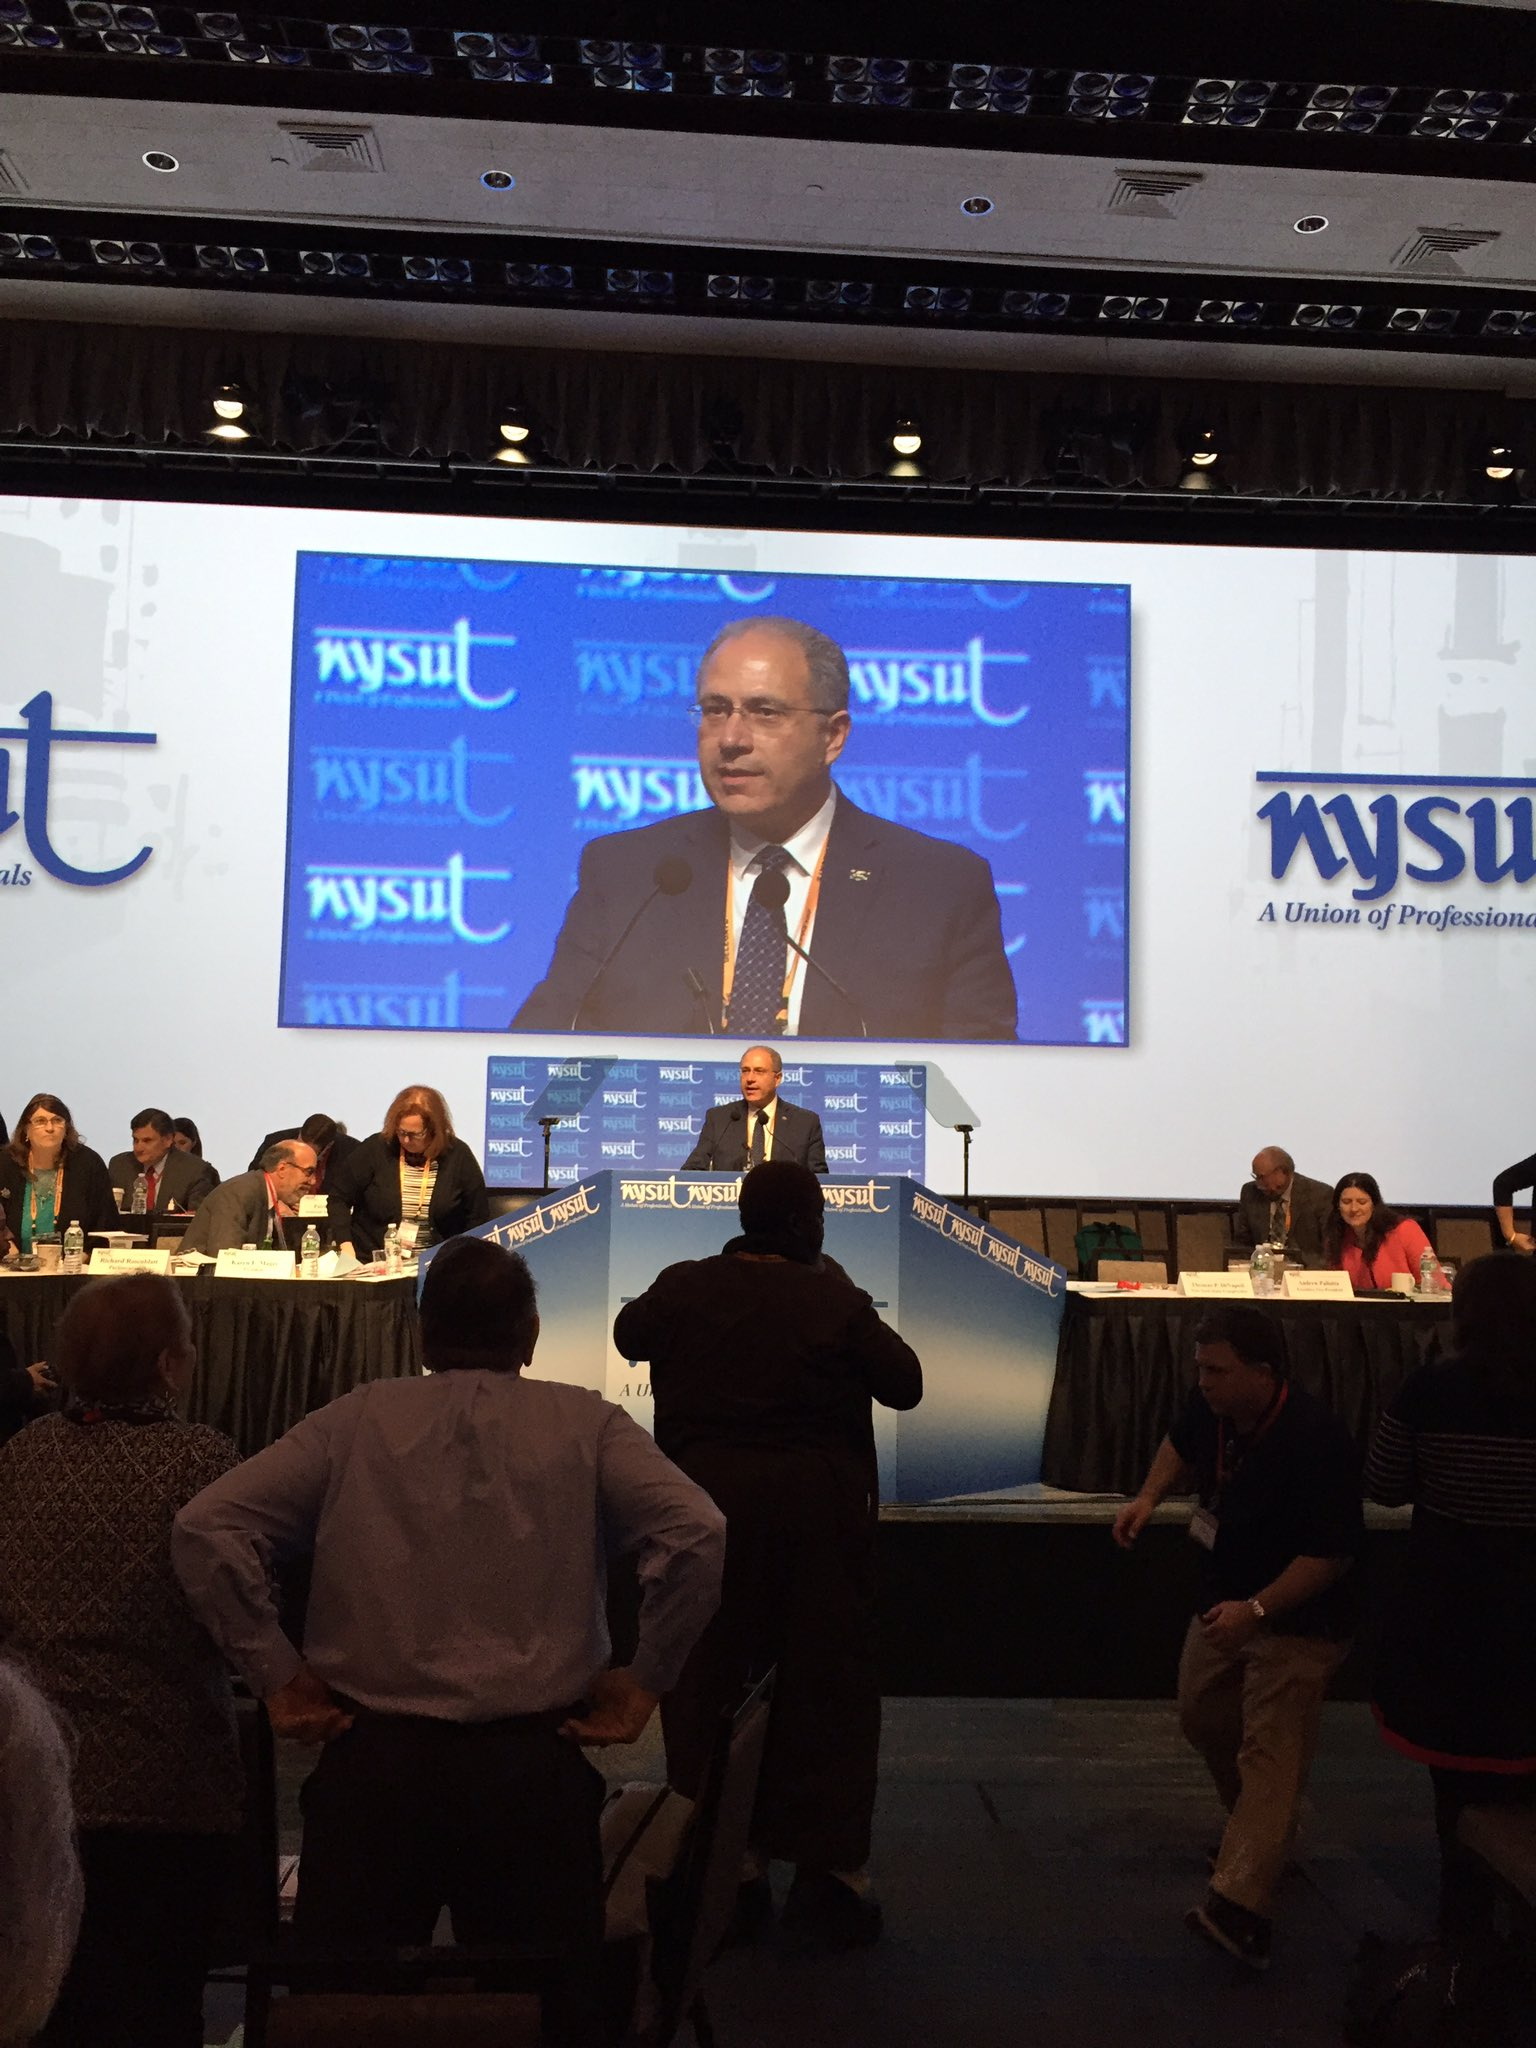 Congratulations to @AndyPallotta @giantschick89 @PaulPecorale @Philippe4VP @nysutTreasurer the new @nysut leadership team #nysutra2017 https://t.co/zvFjB21NHN